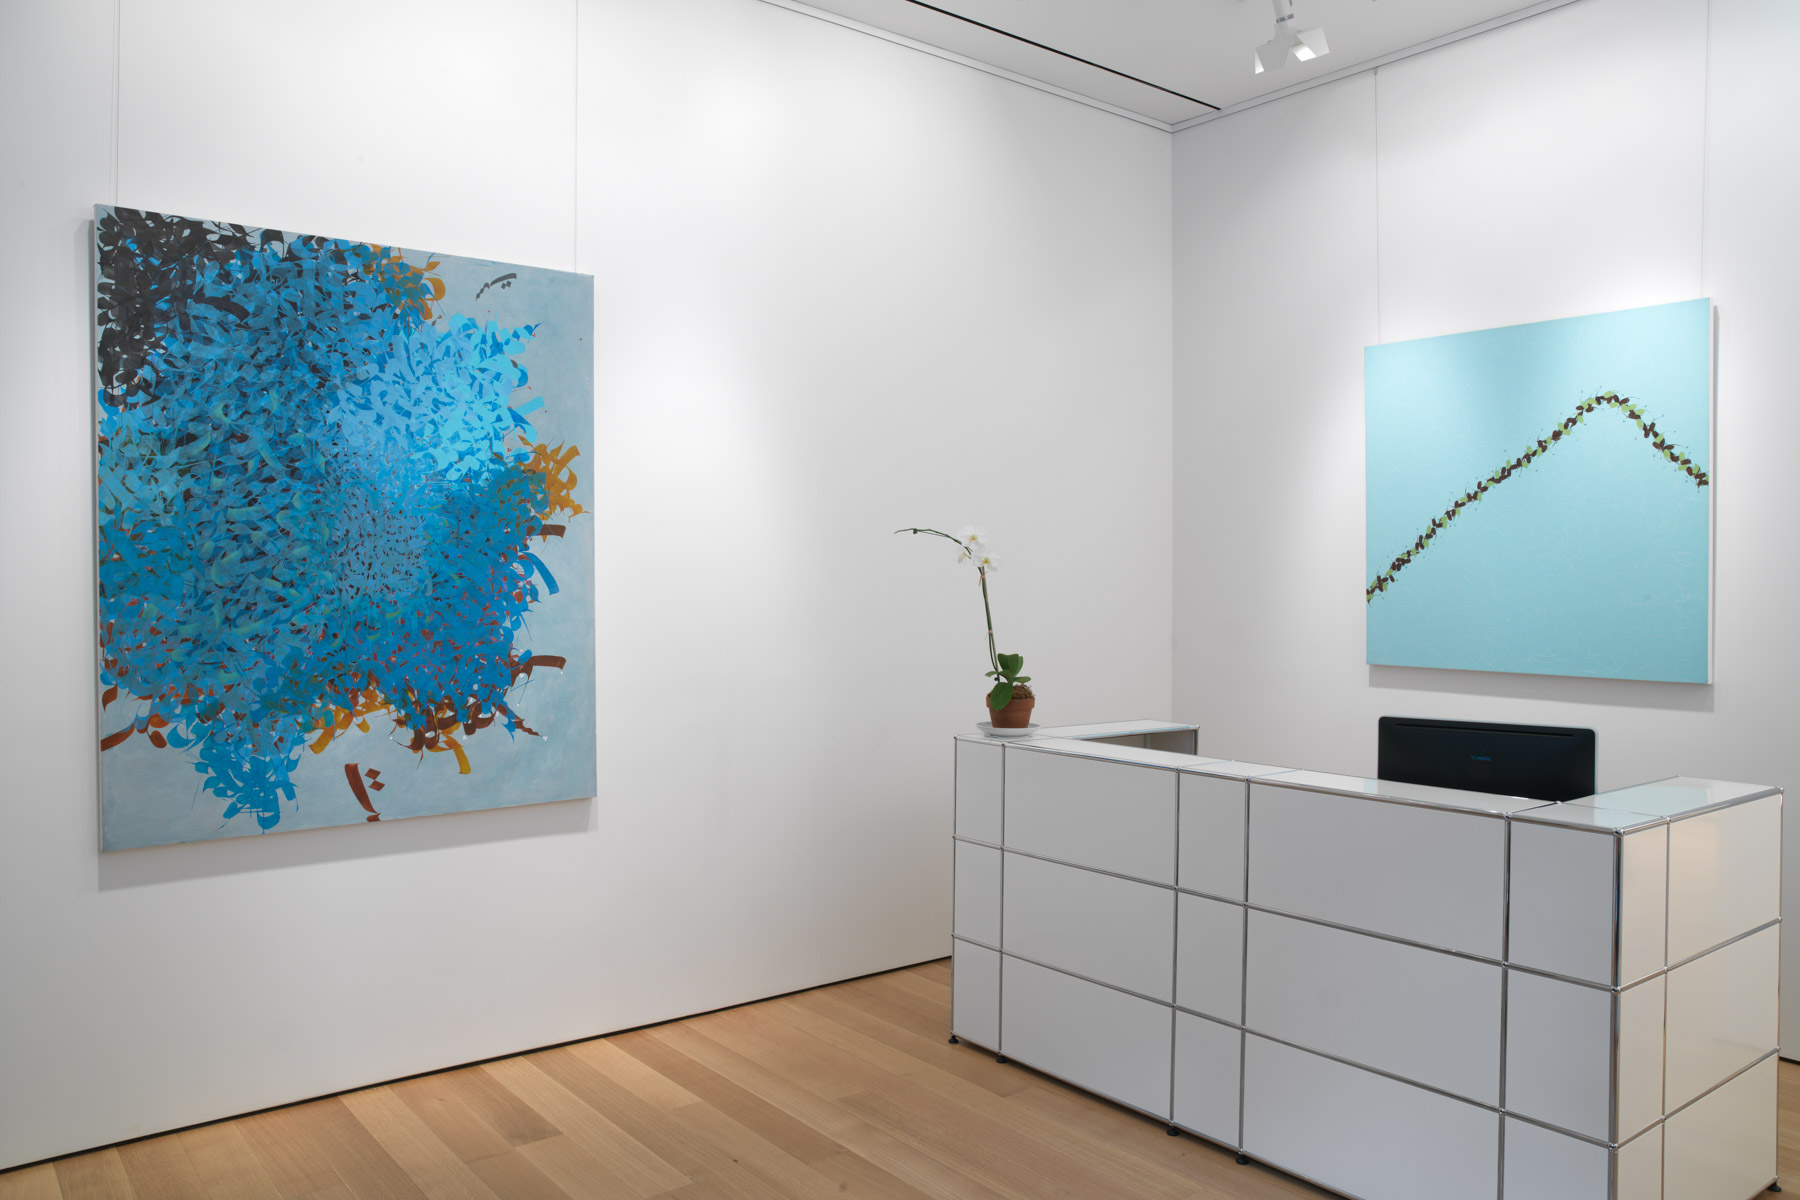 installation view of Pouran Jinchi's work